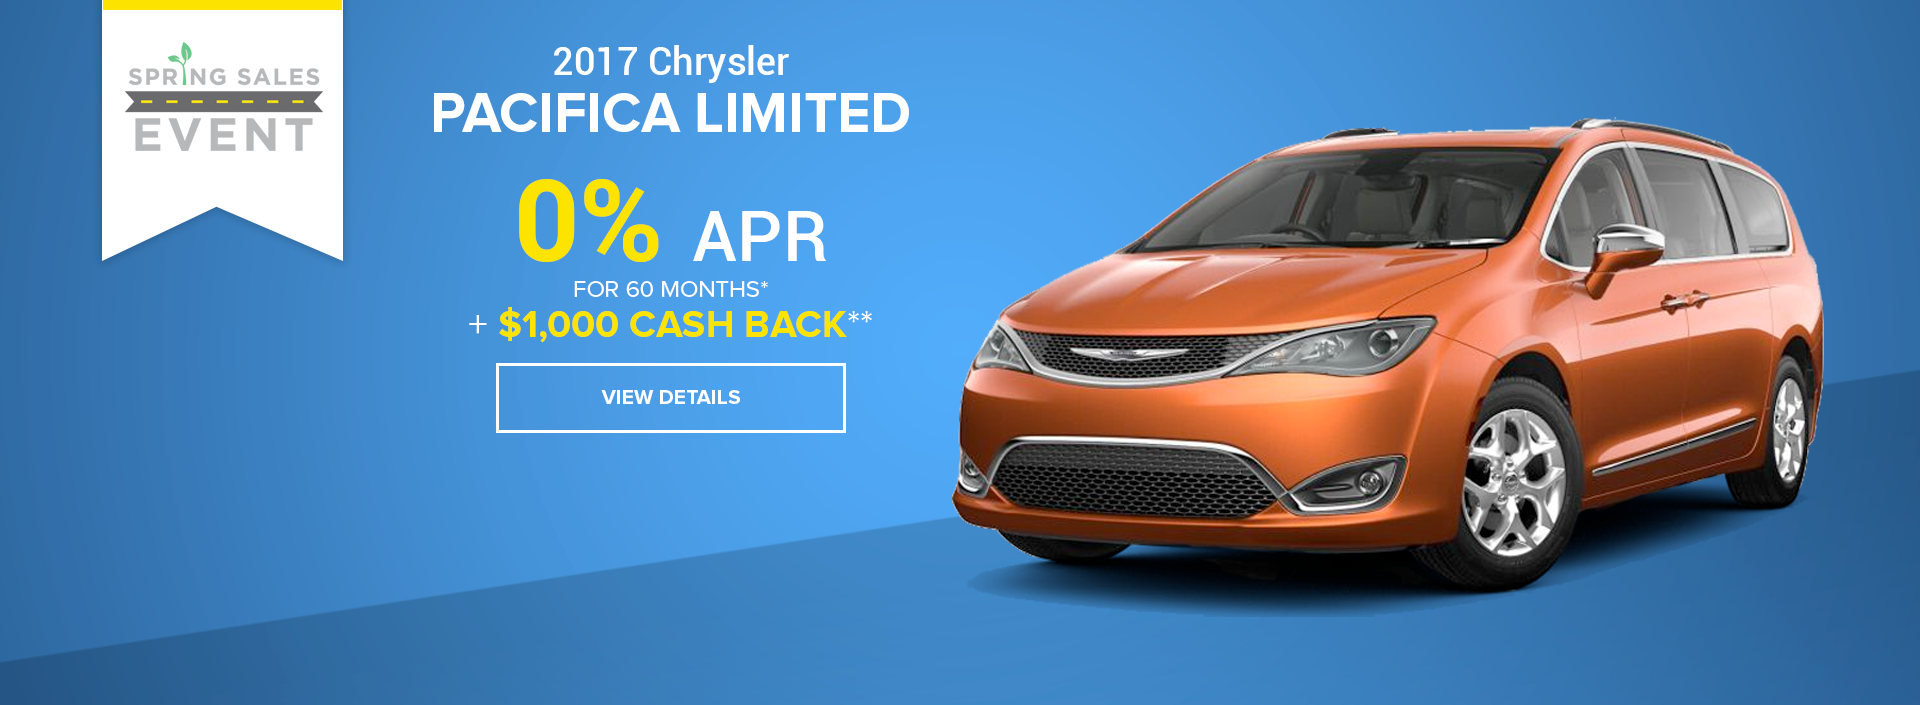 West Hills CJD Chrysler Pacifica Special Offer